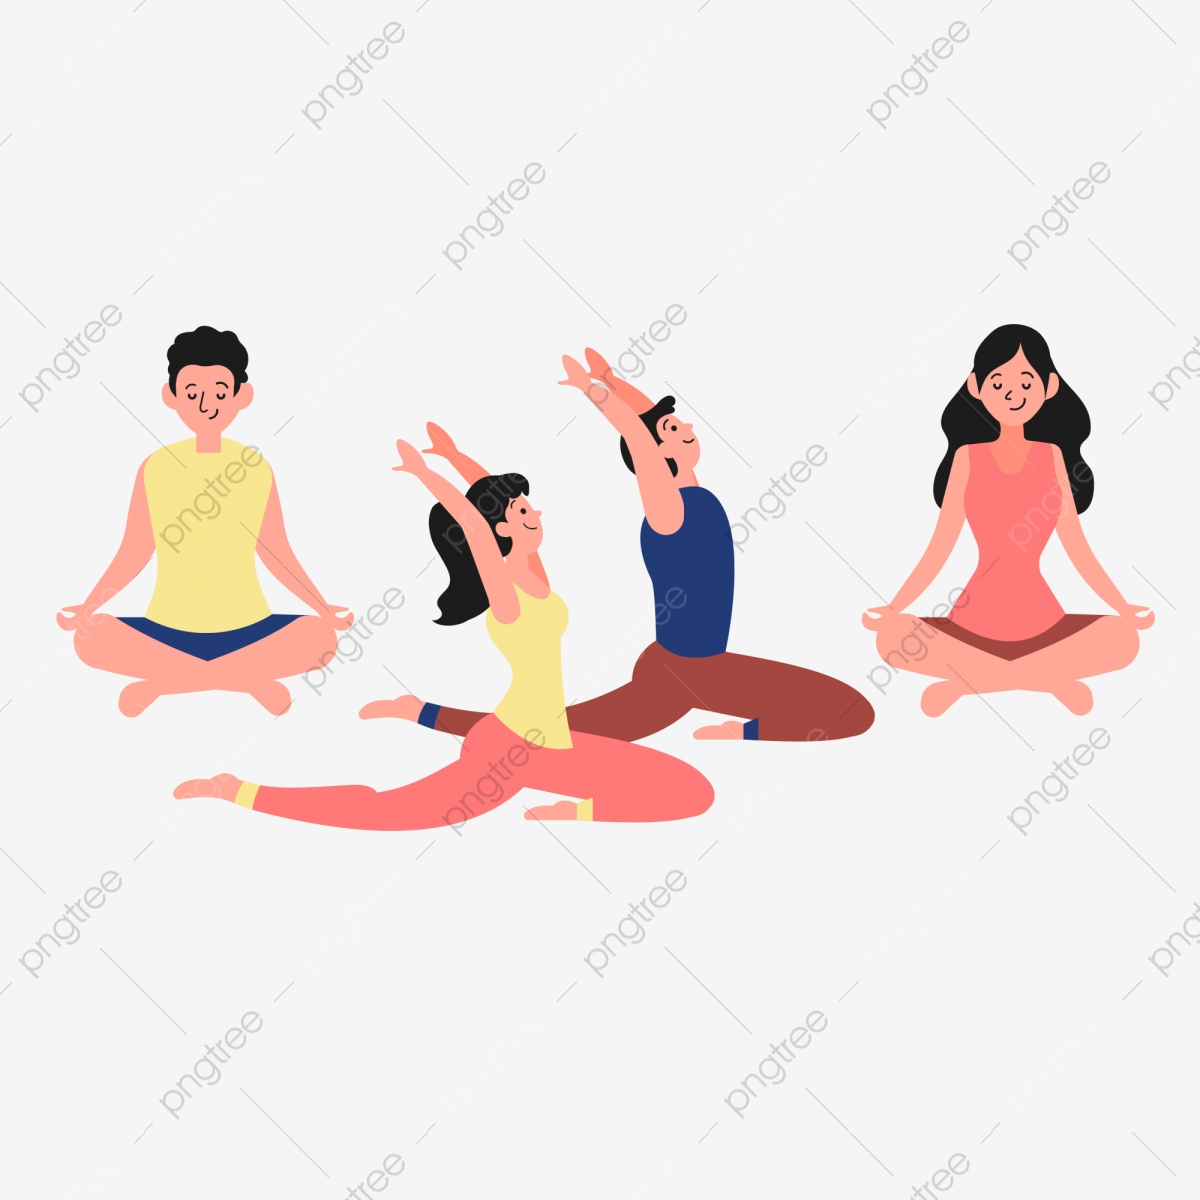 Cute Flat Simple Yoga Meditation Character Material Cute Characters Flat Characters Simple Characters Png Transparent Clipart Image And Psd File For Free Download